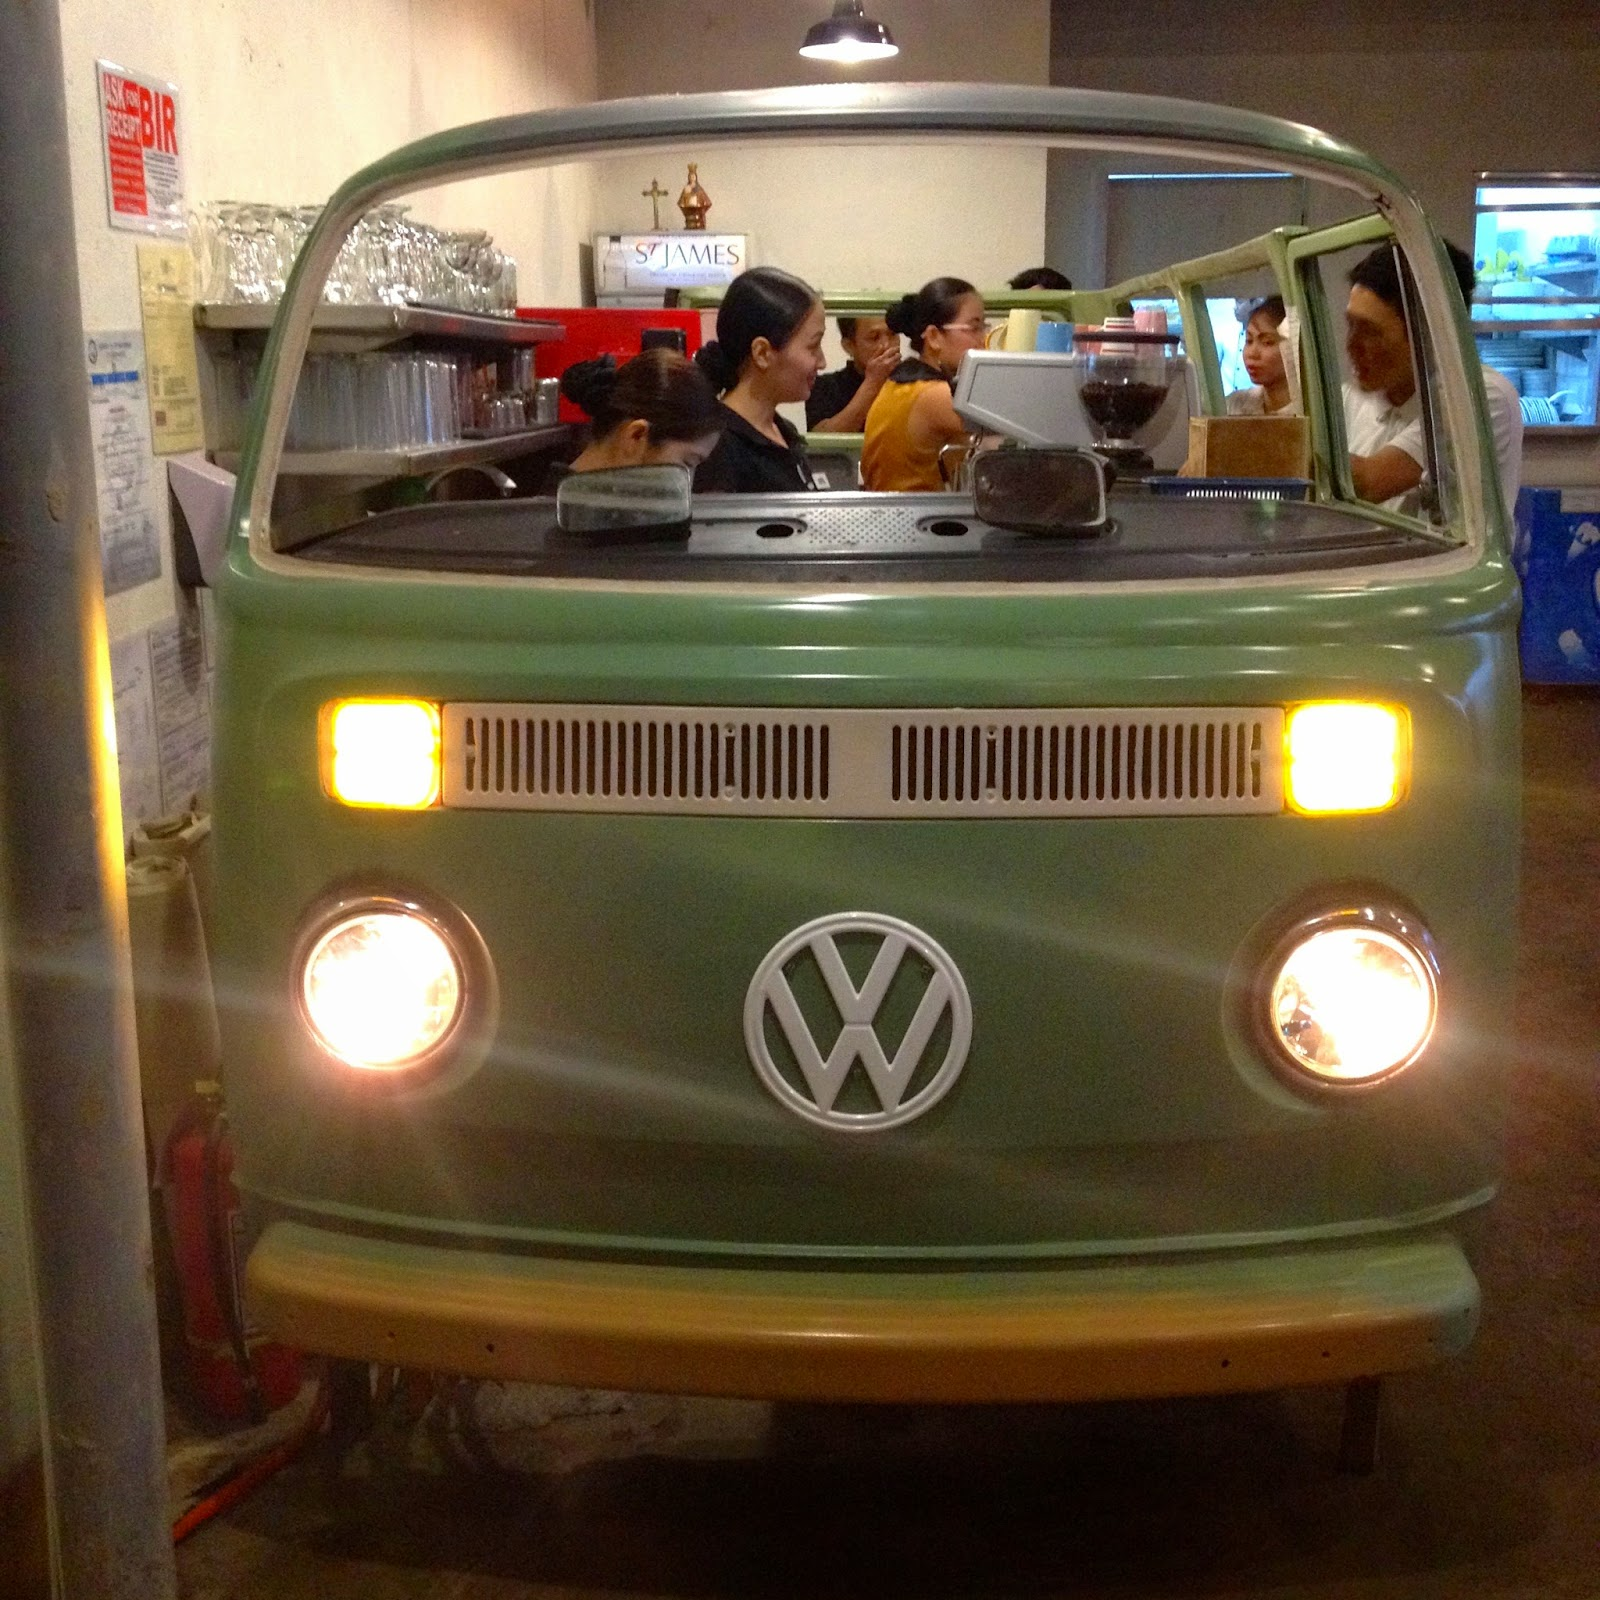 VW van at a diner in Cebu